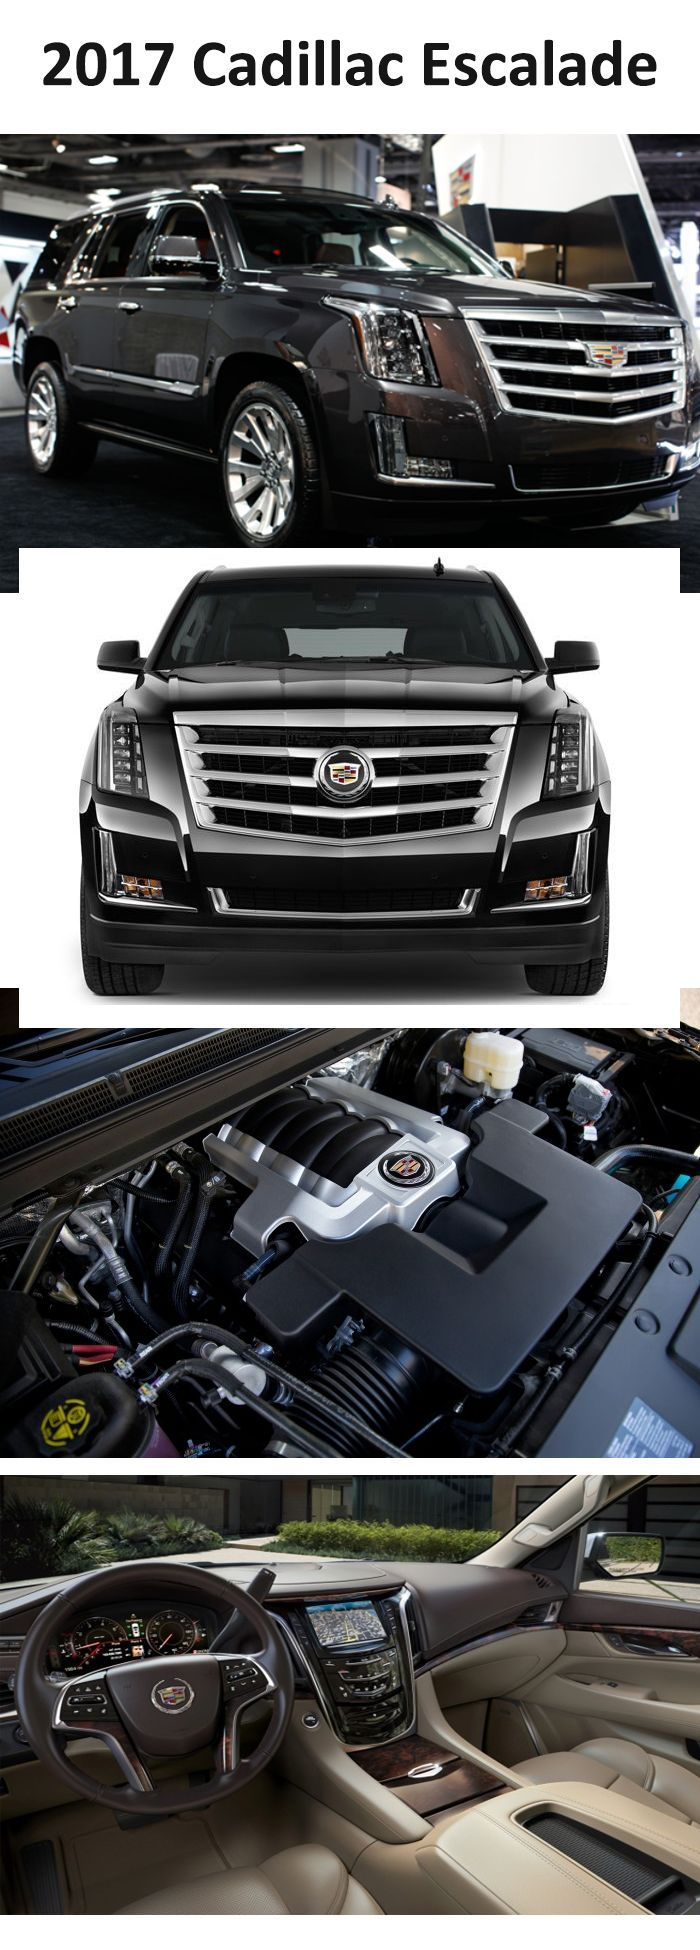 Customized cadillac escalade see more 2017 cadillac_escalade what hubby wants his parents to get